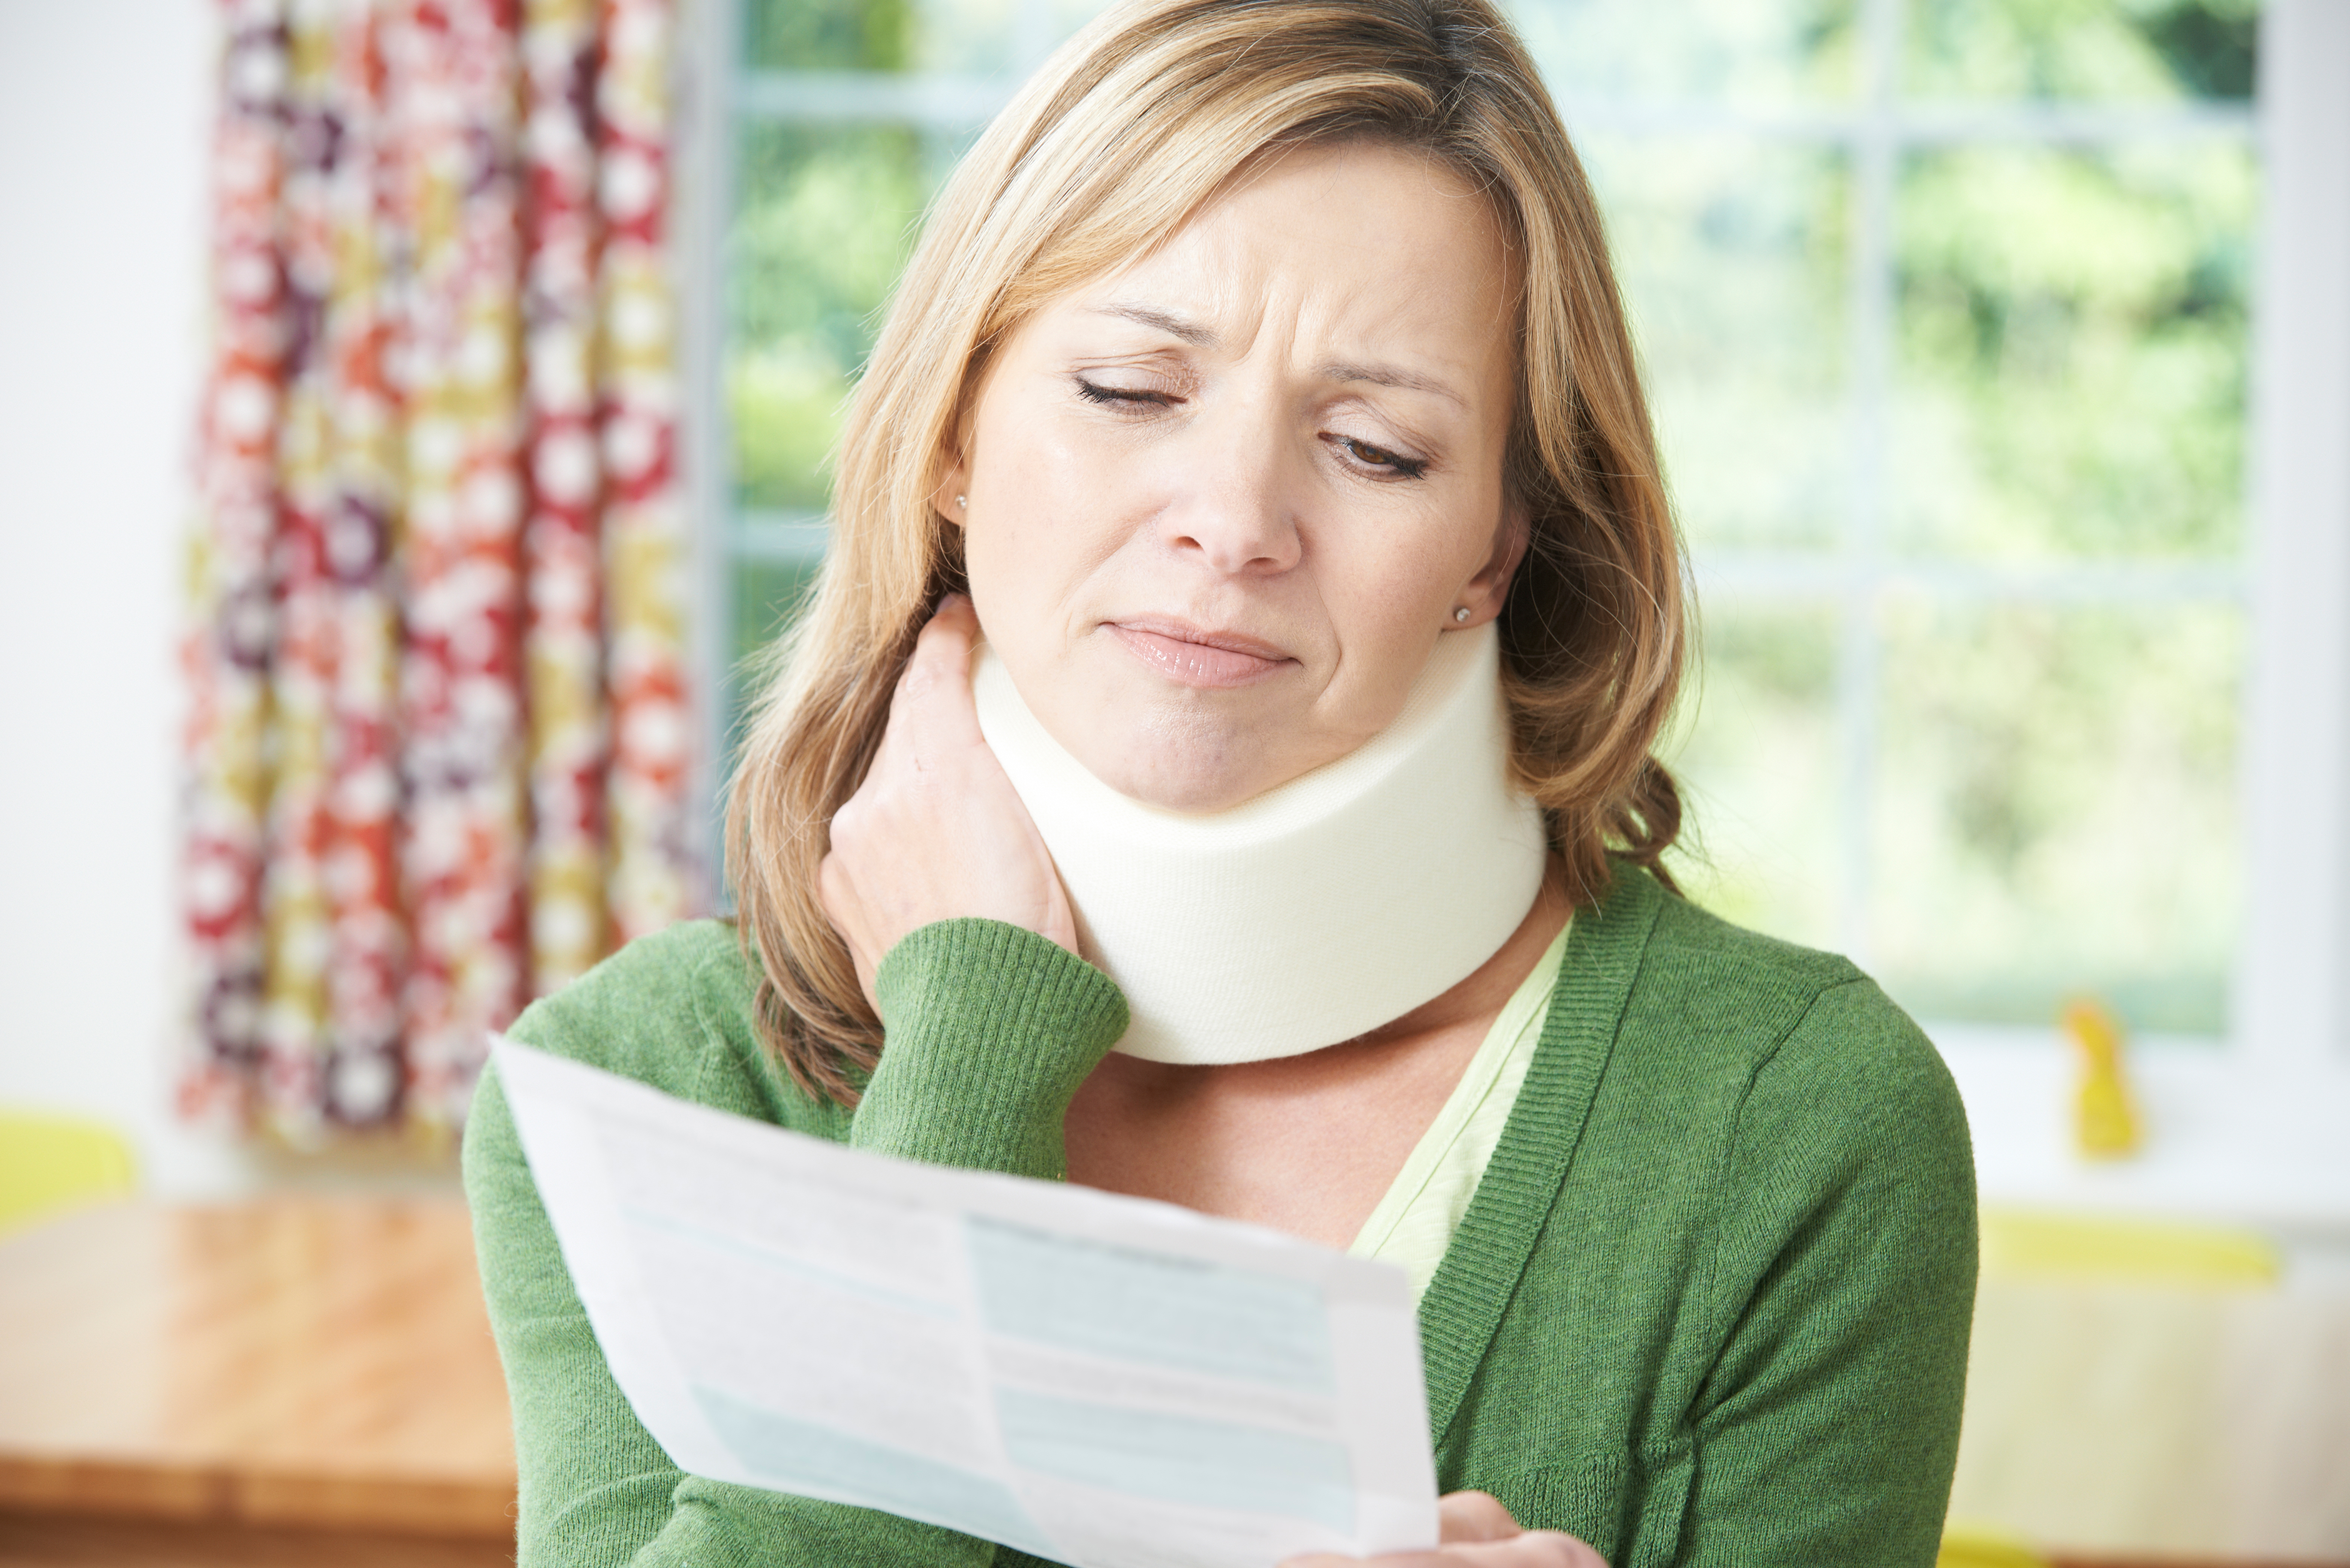 Woman with a neck injury, realizing she should go to Kate Frame Acupuncture for treatment.